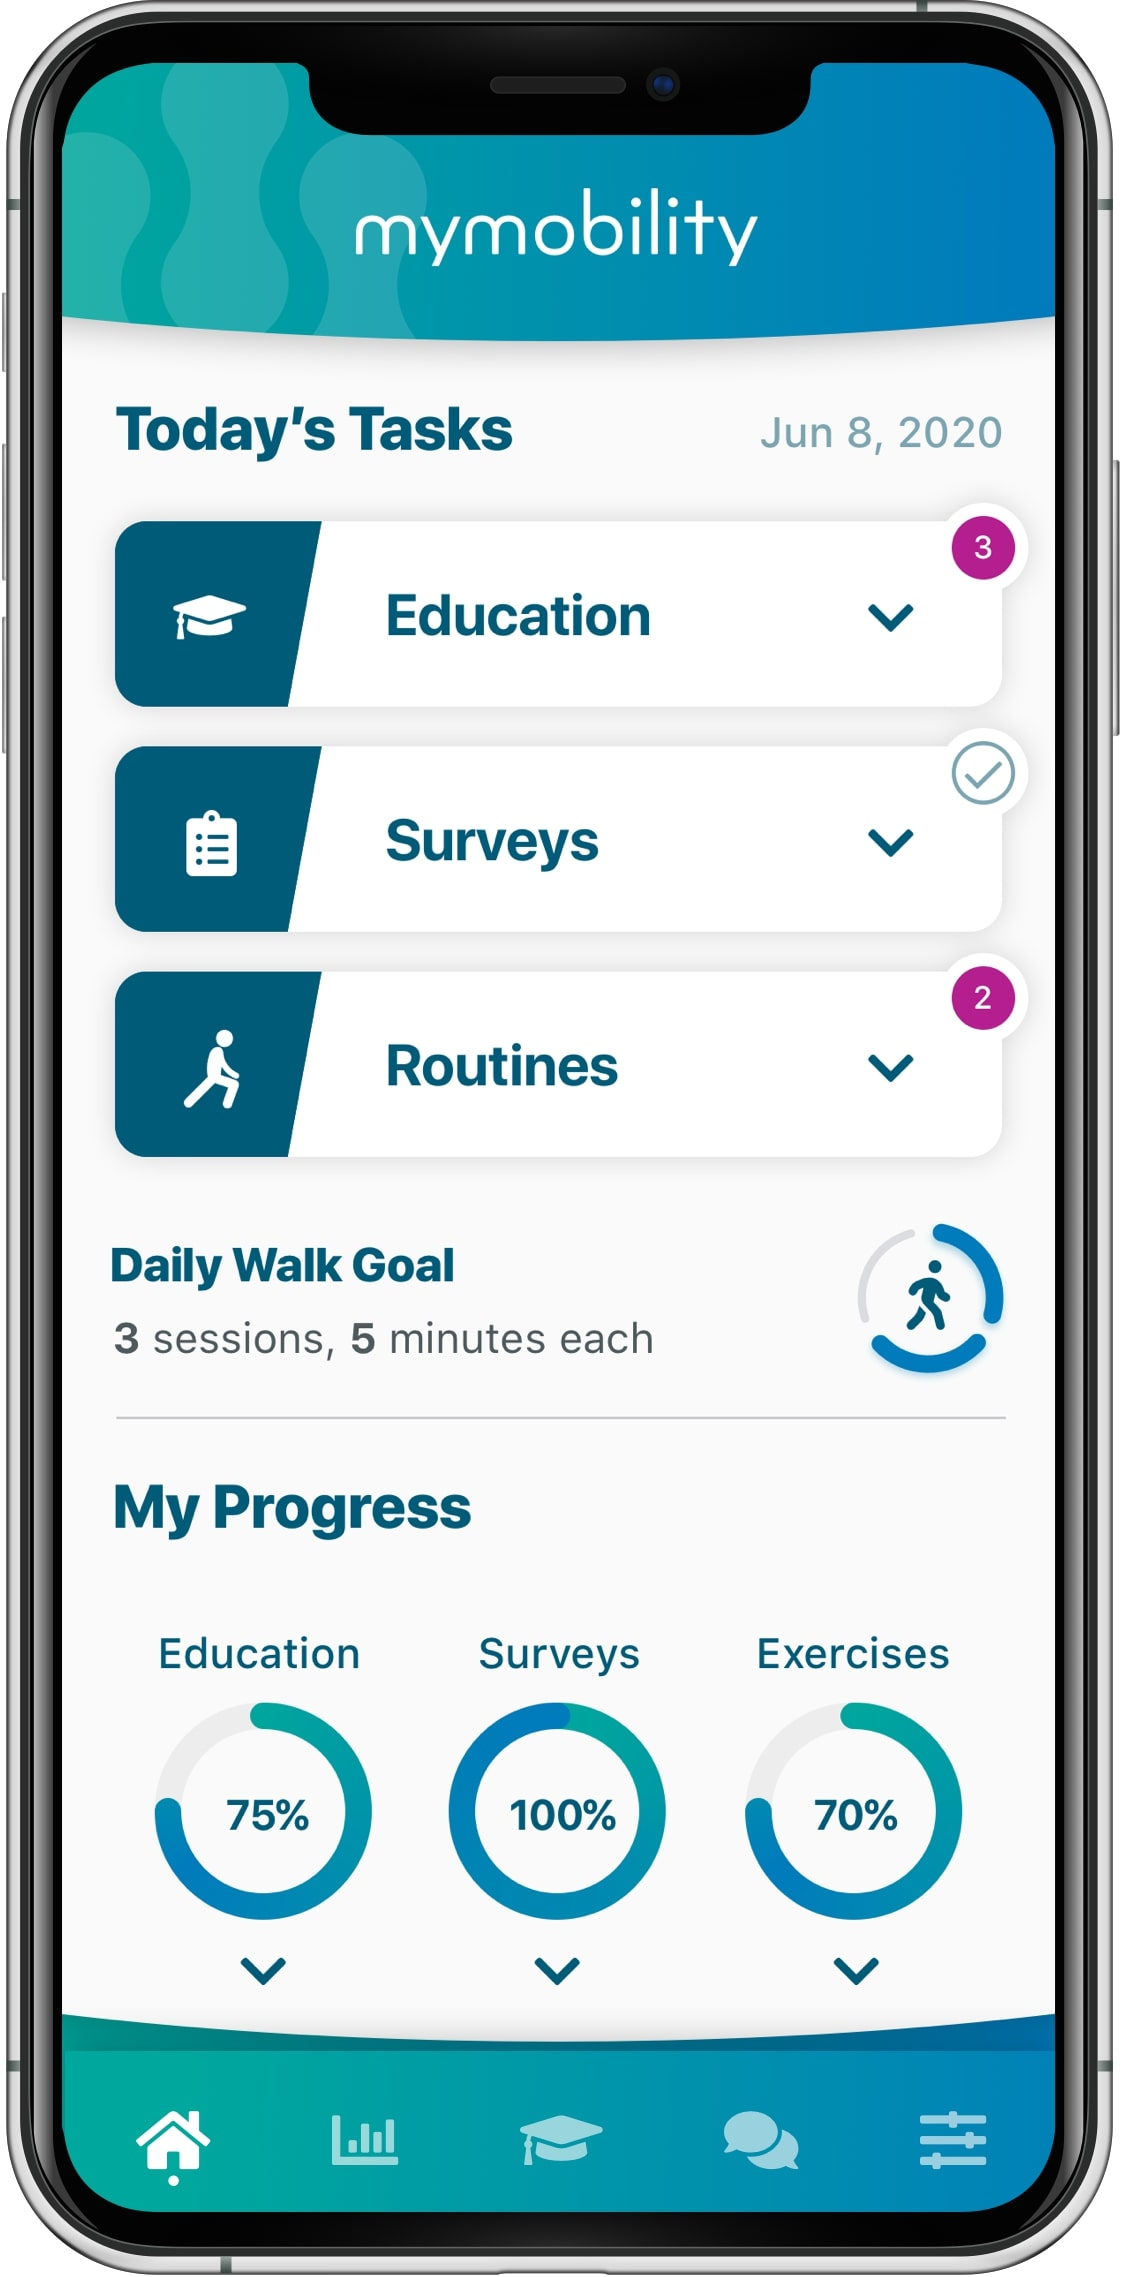 Patients can view their To Do List, notifications, and answer questionnaires (Patient Reported Outcome Measures, PROMs) through the app.